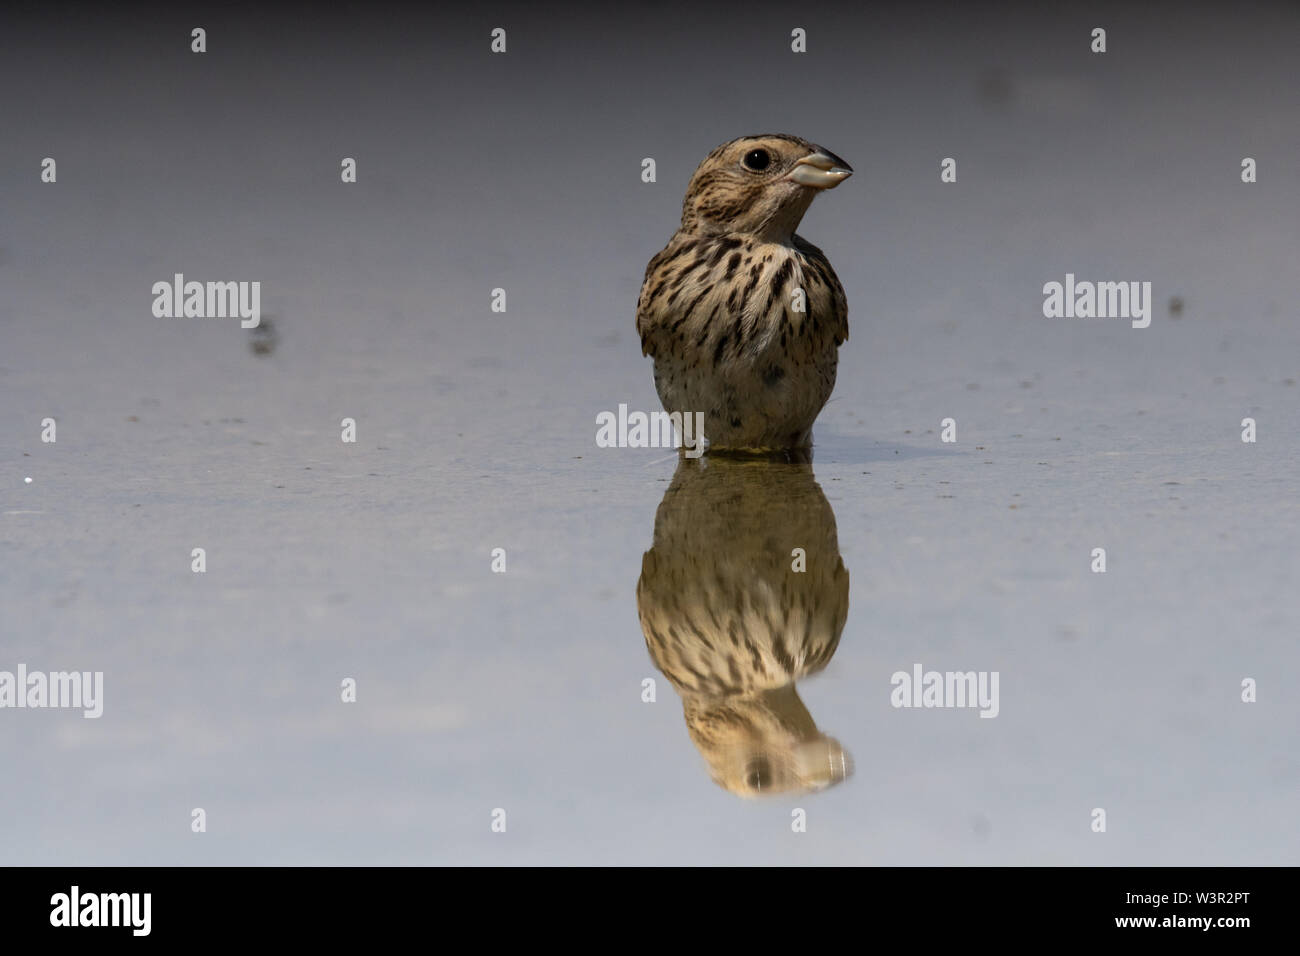 Common Linnet (Carduelis cannabina) near a puddle of water in the desert, negev, israel in June - Stock Image